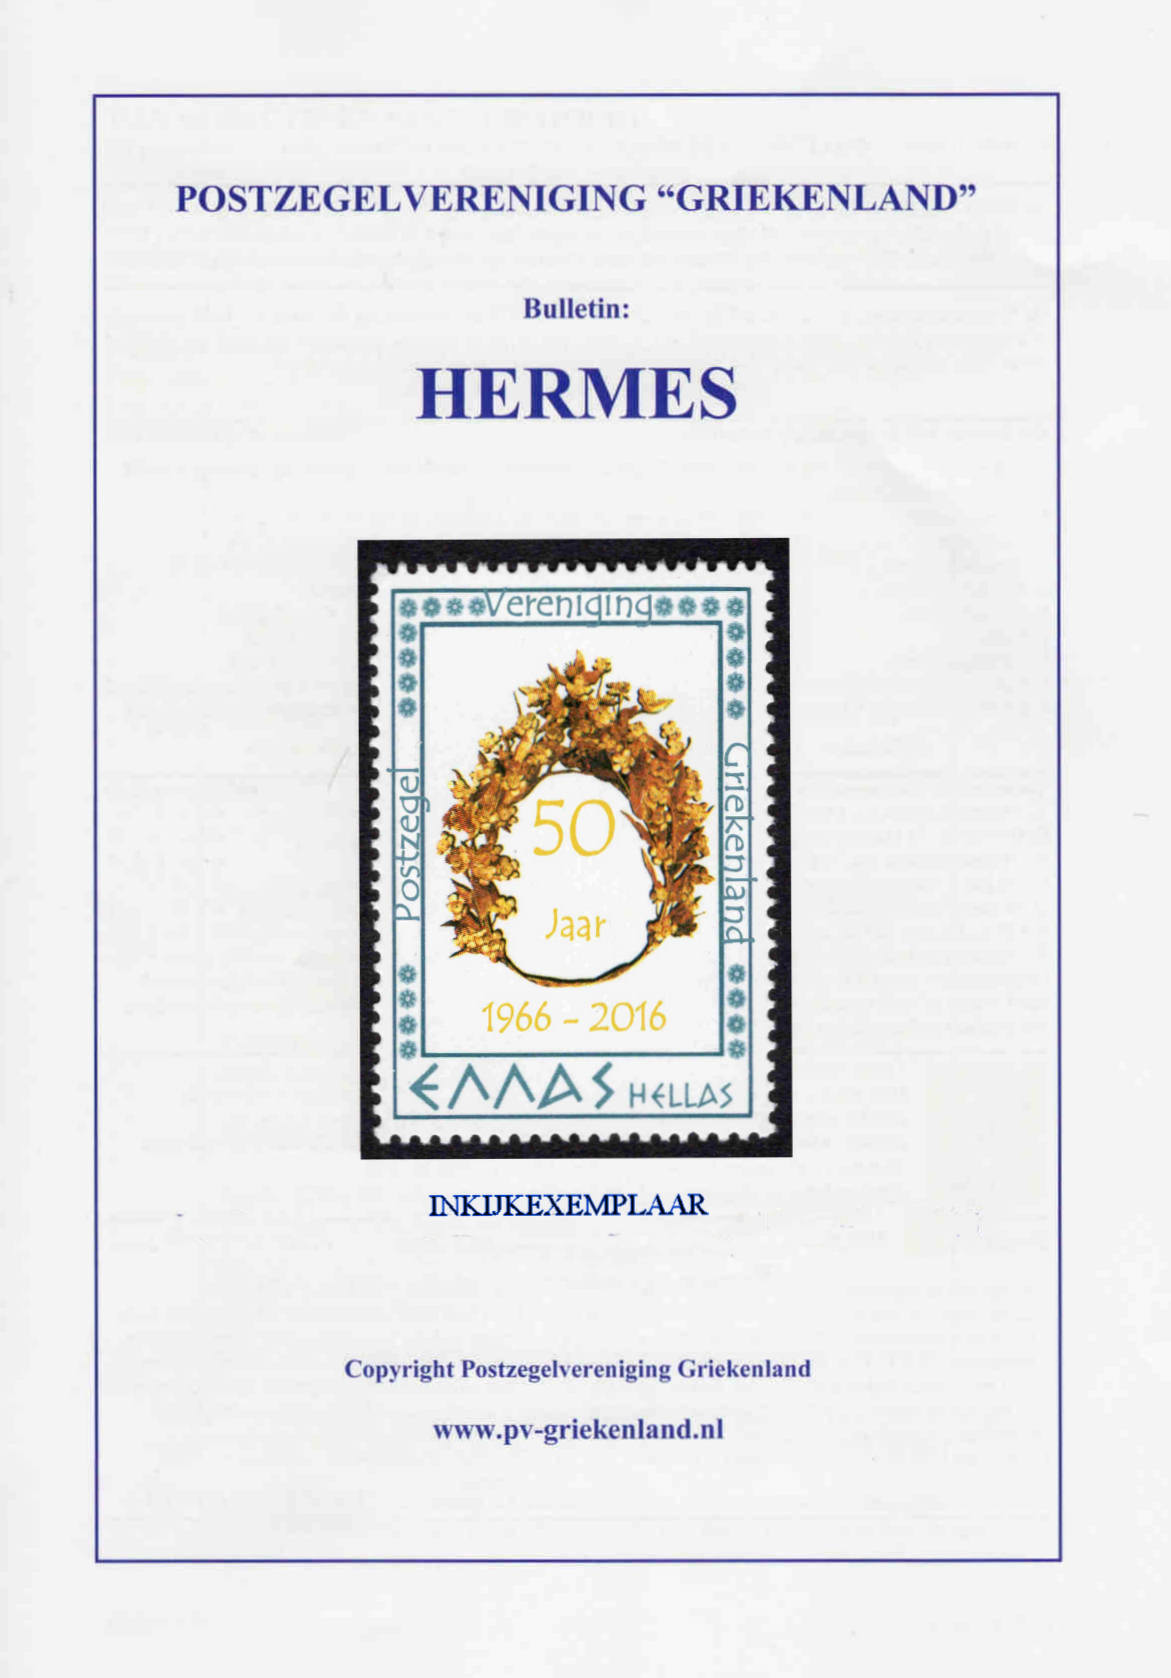 Hermes example pages